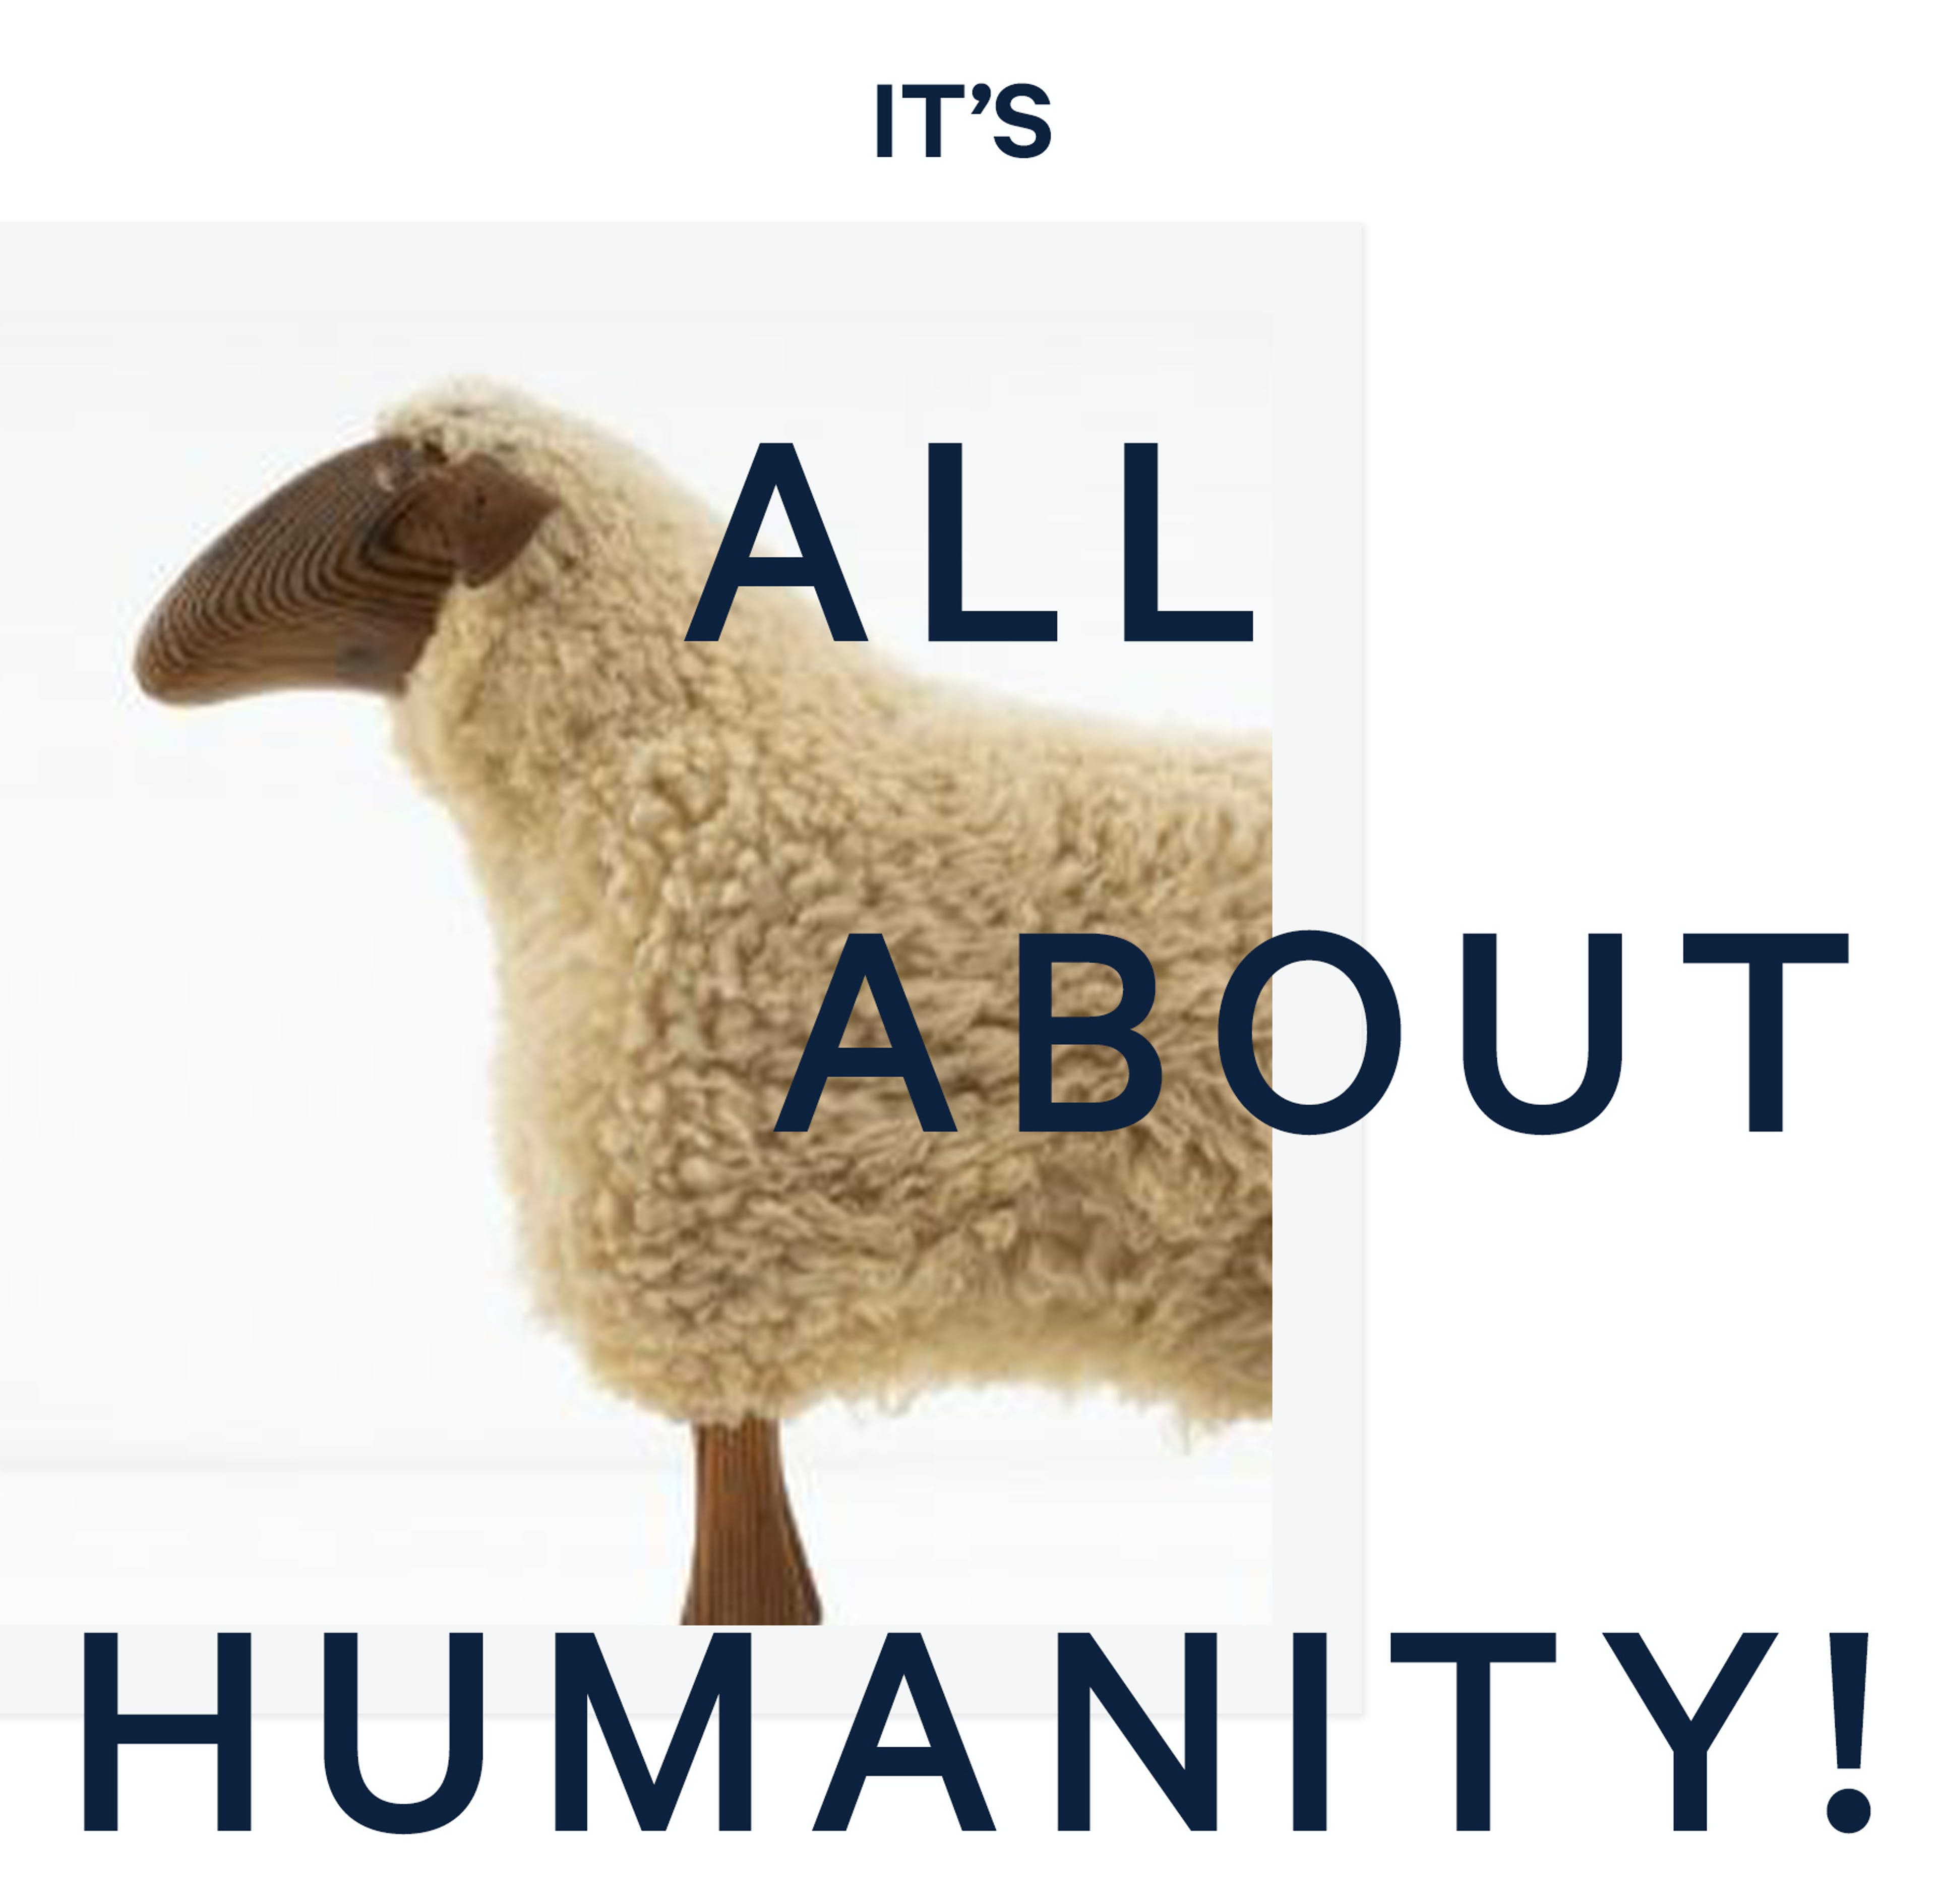 All about Humanity